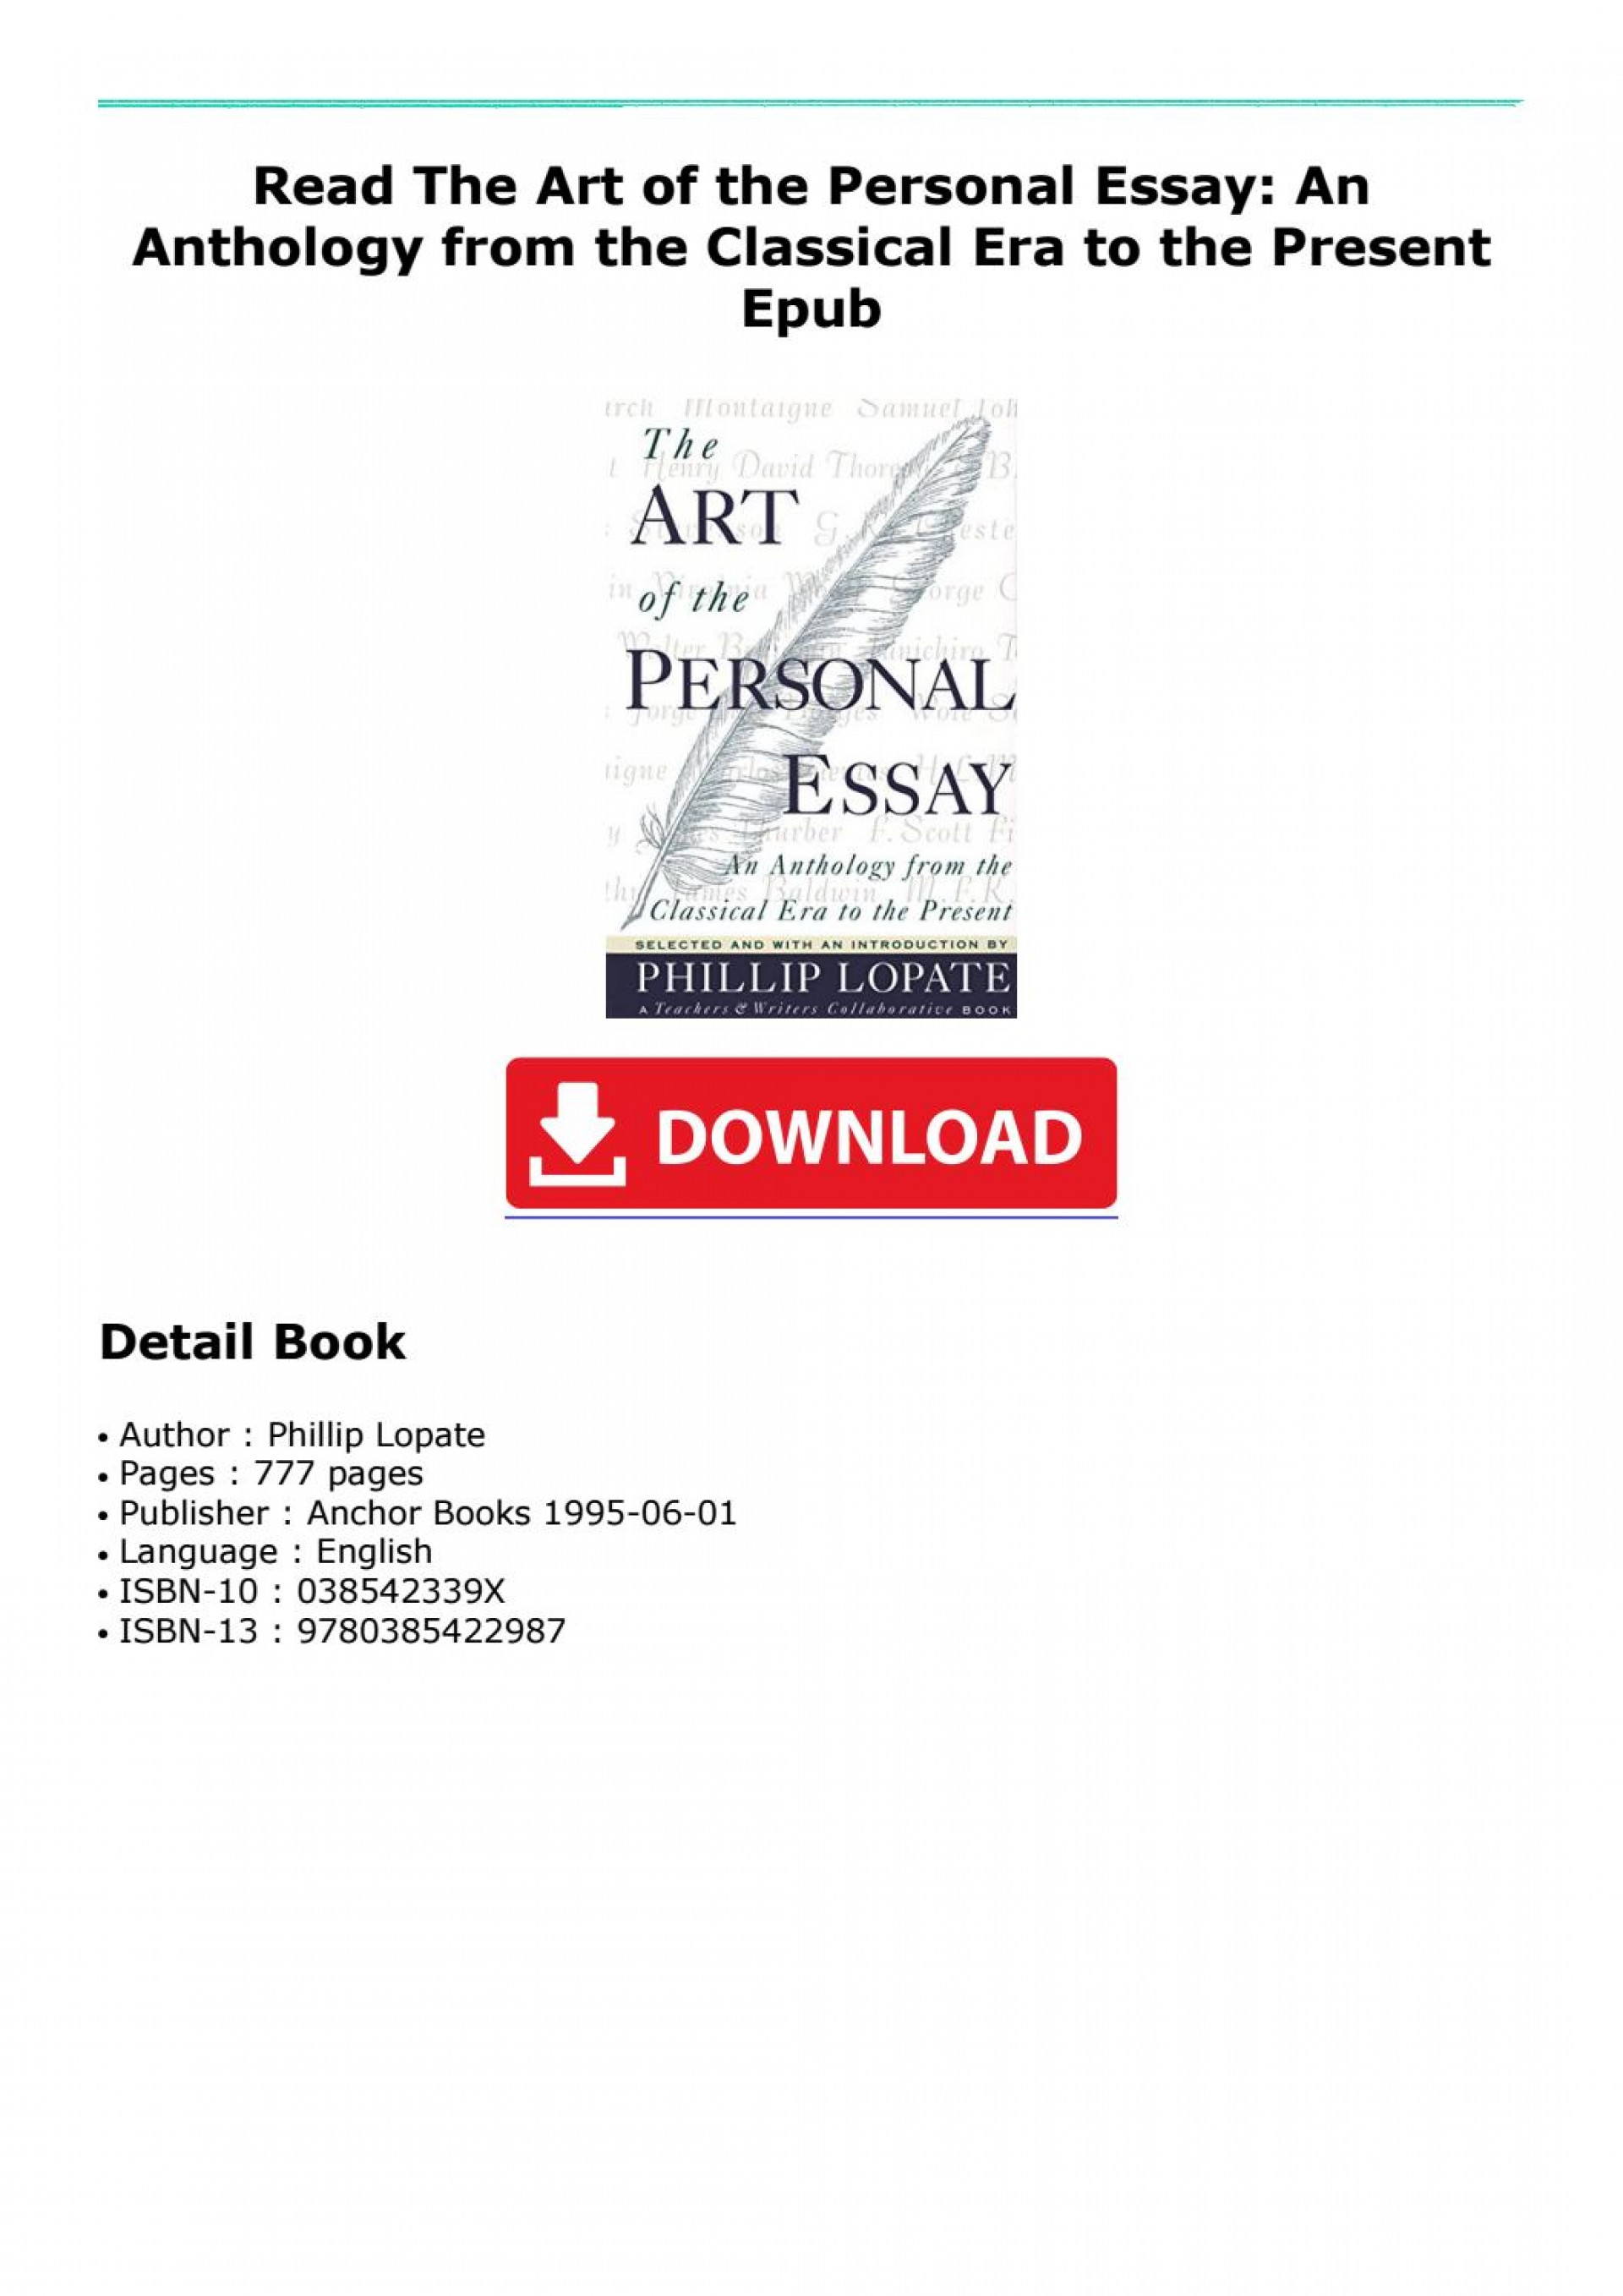 005 Essay Example Page 1 The Art Of Beautiful Personal Pdf Download Table Contents 1920